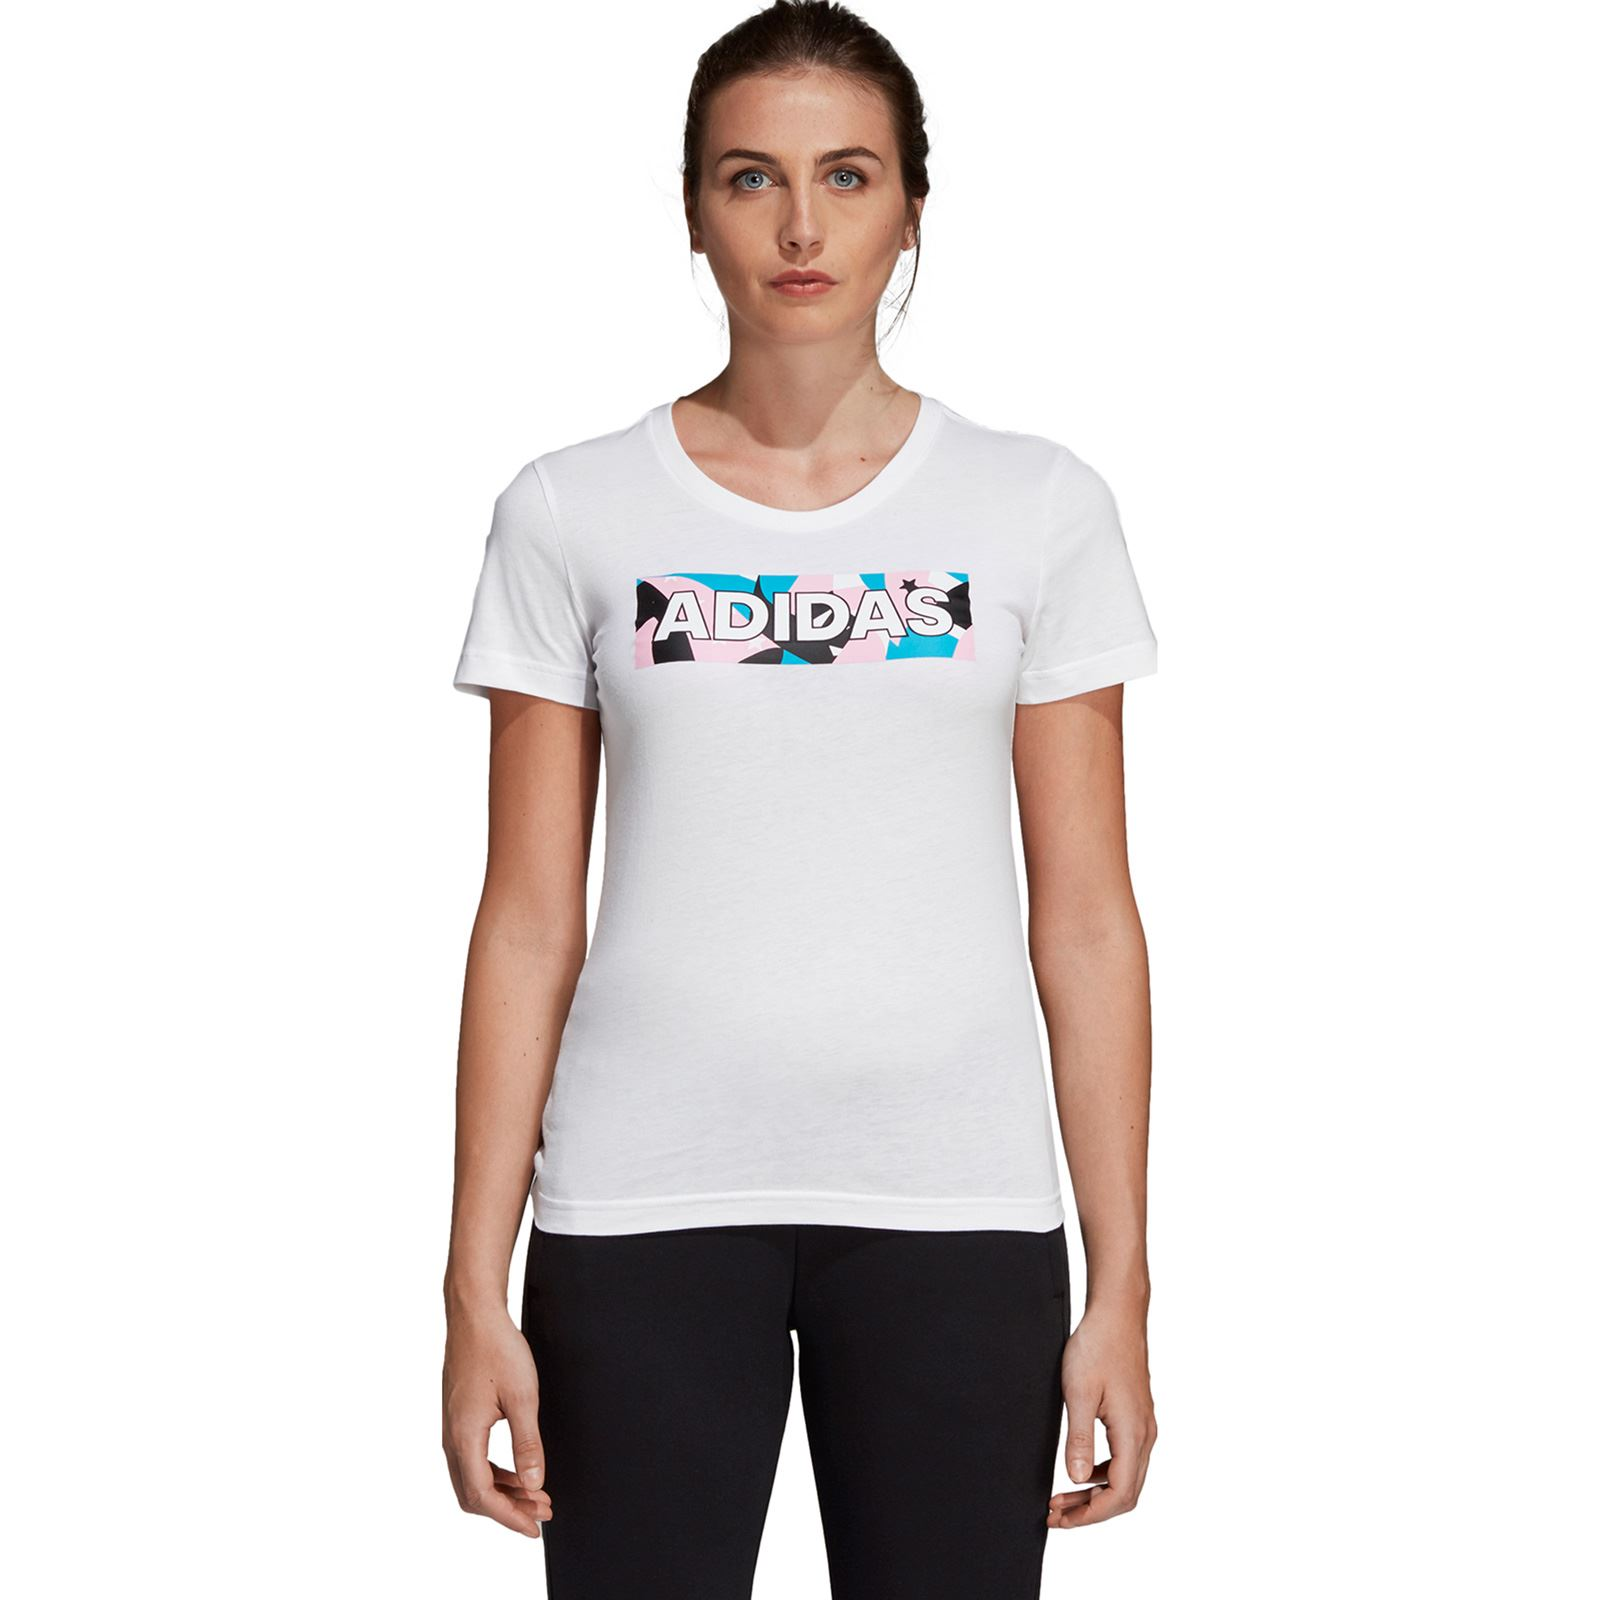 be0aabf538426 adidas Originals T-shirt manches courtes - blanc